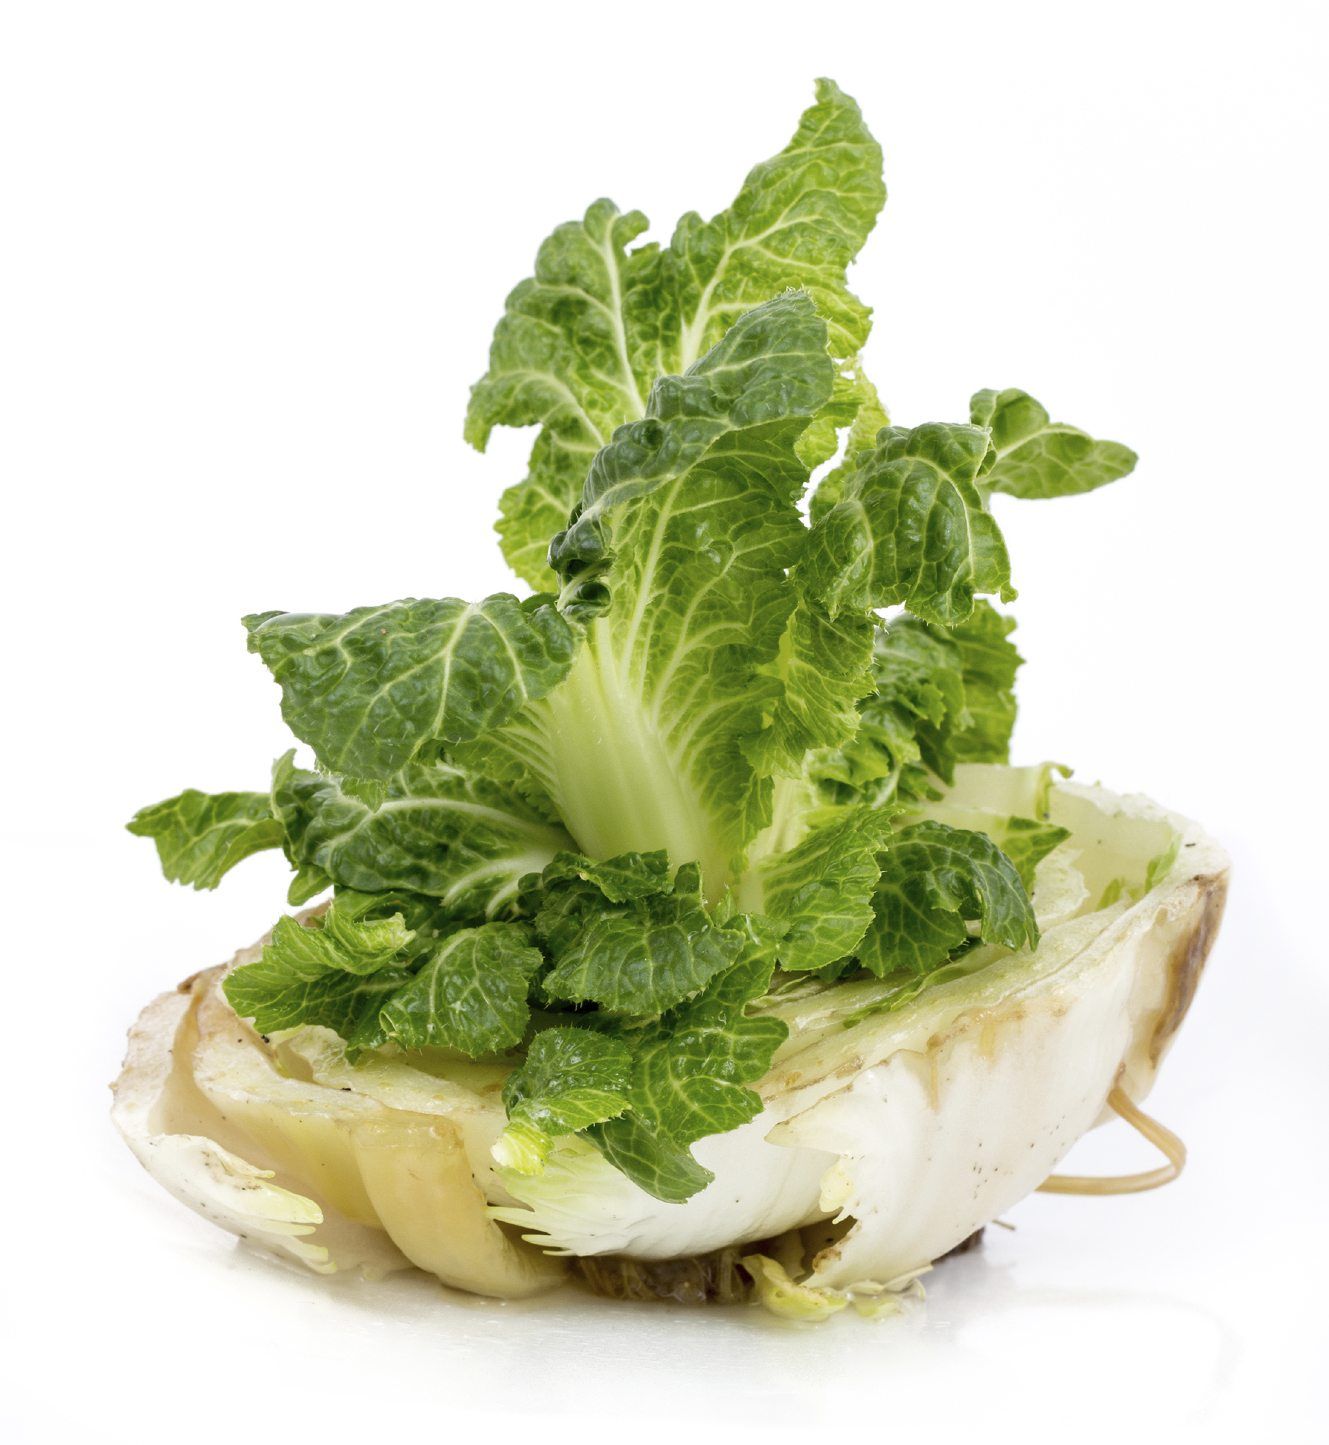 Regrow Veggies From Kitchen Scraps: Can I Regrow Cabbage In Water: How To Grow Cabbage From